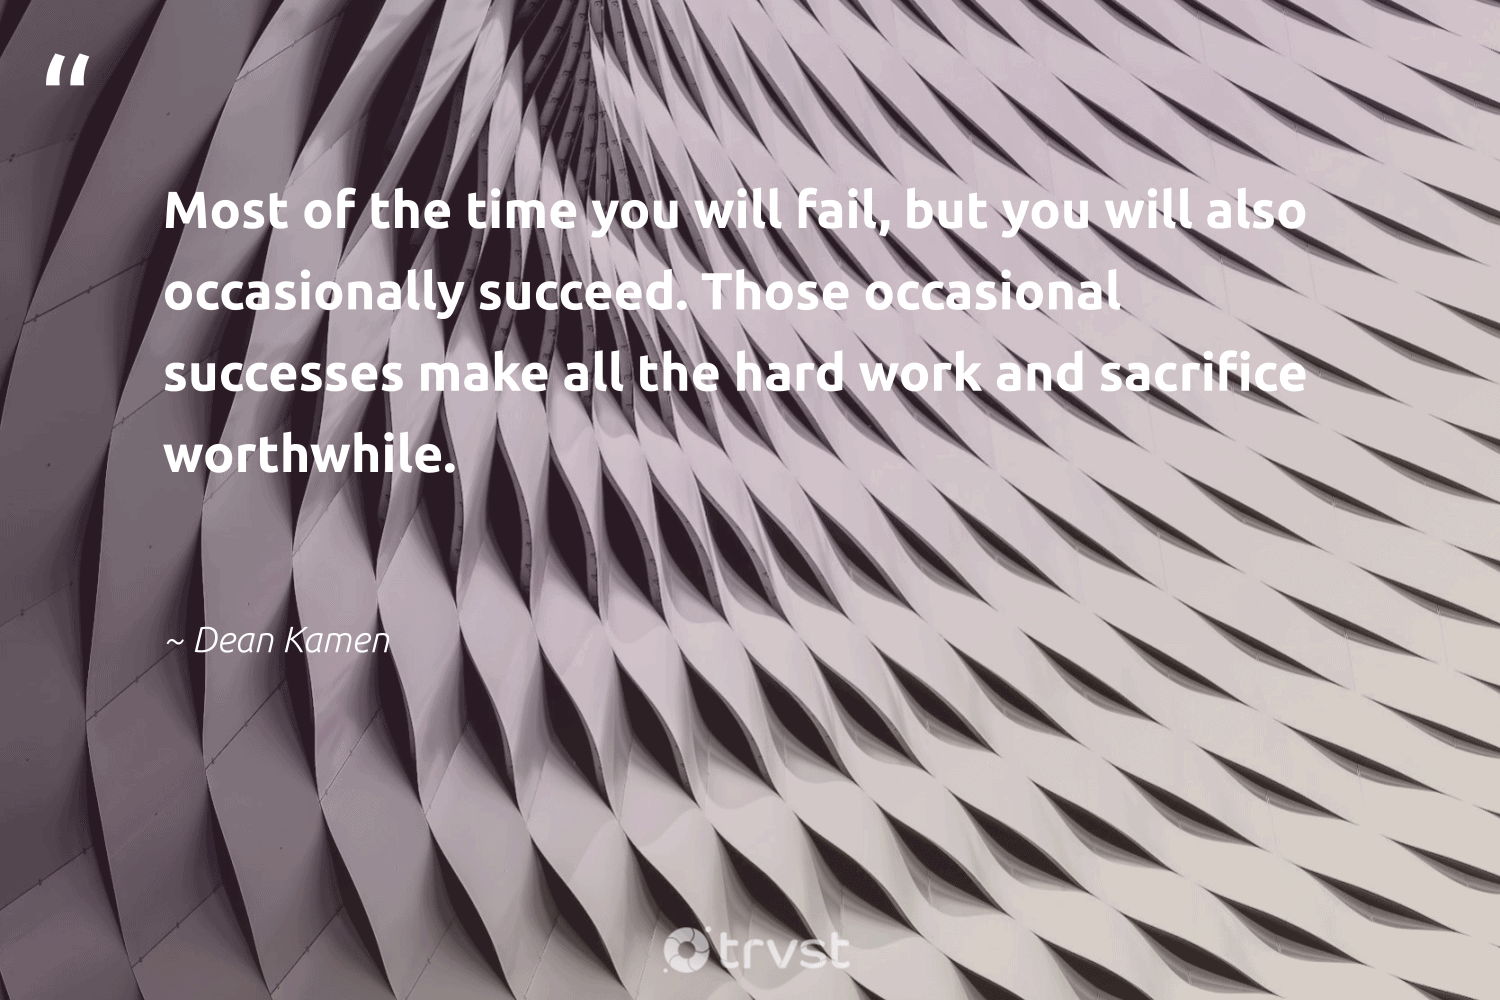 """Most of the time you will fail, but you will also occasionally succeed. Those occasional successes make all the hard work and sacrifice worthwhile.""  - Dean Kamen #trvst #quotes #begreat #planetearthfirst #futureofwork #dotherightthing #nevergiveup #thinkgreen #softskills #socialchange #collectiveaction #socialimpact"